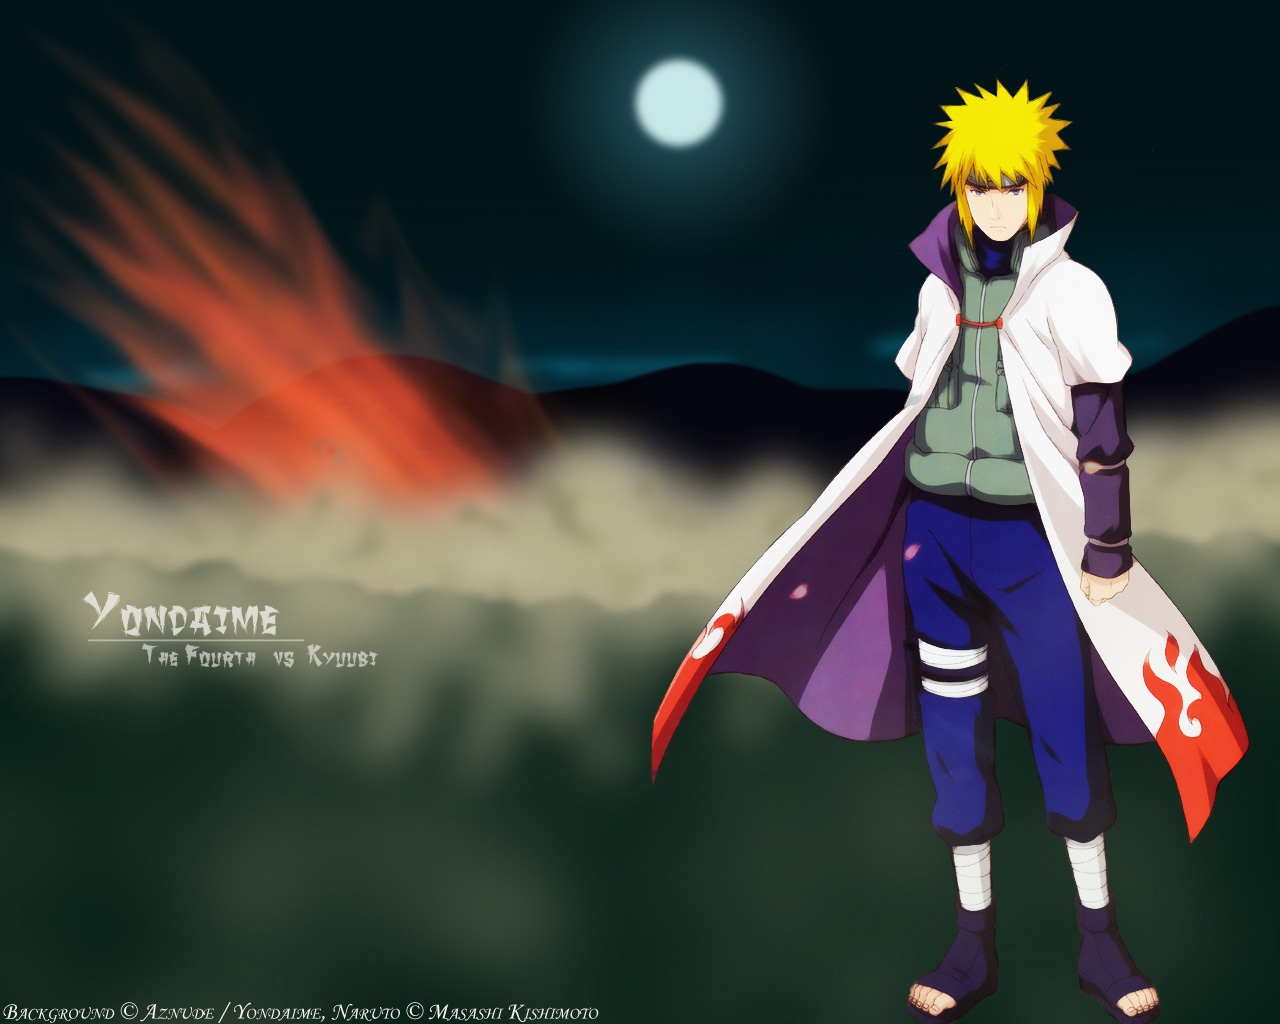 Anime Wallpaper yondaime